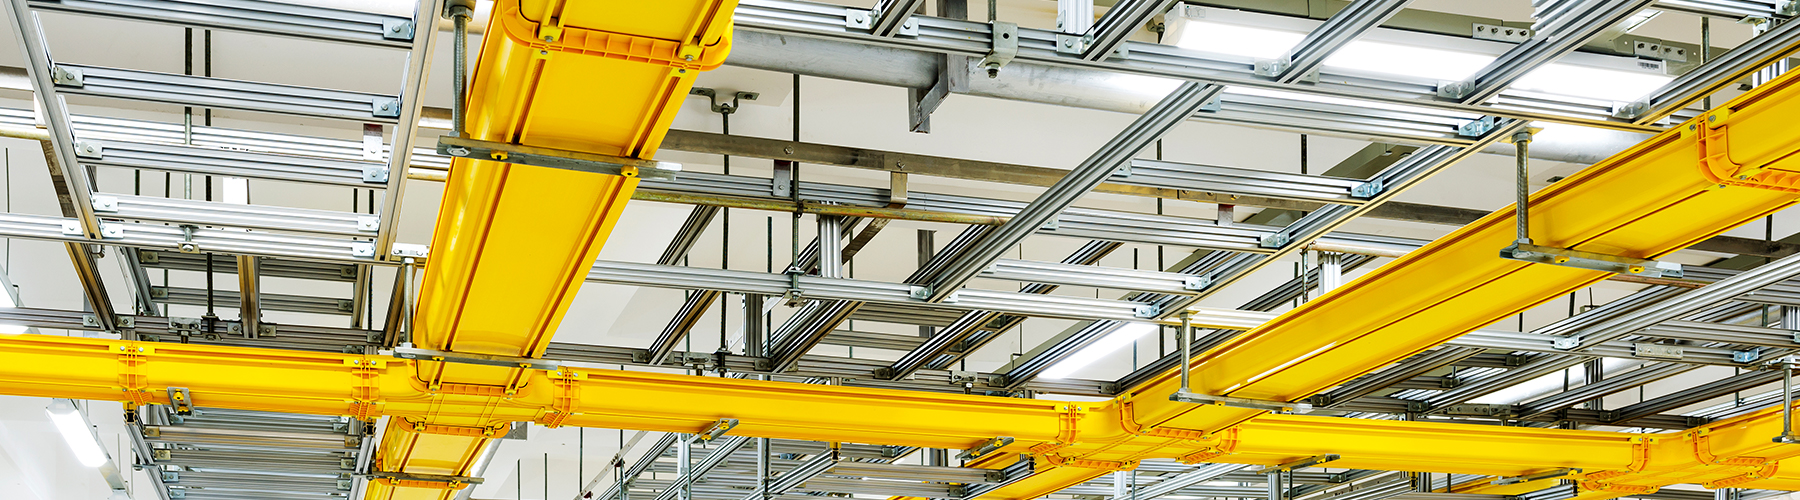 Cable Trunking Malaysia Steel Surface Cable Trunking Malaysia